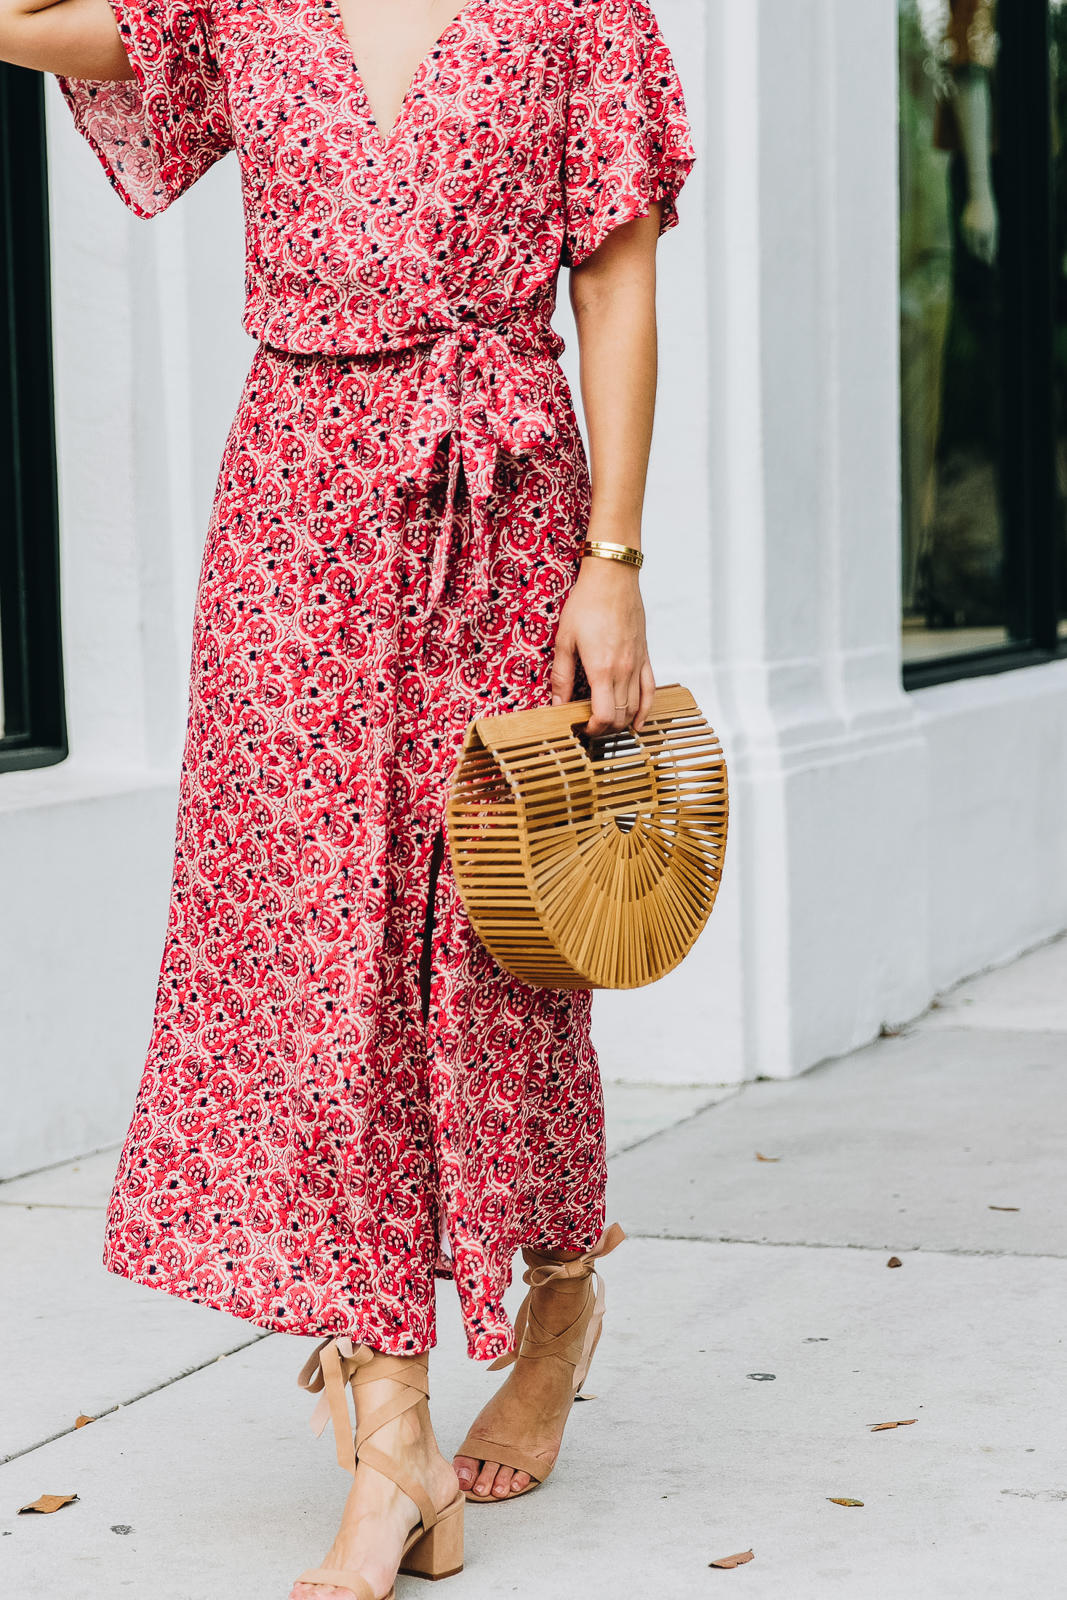 Inspiration robe fleurie , The Girl From Panama